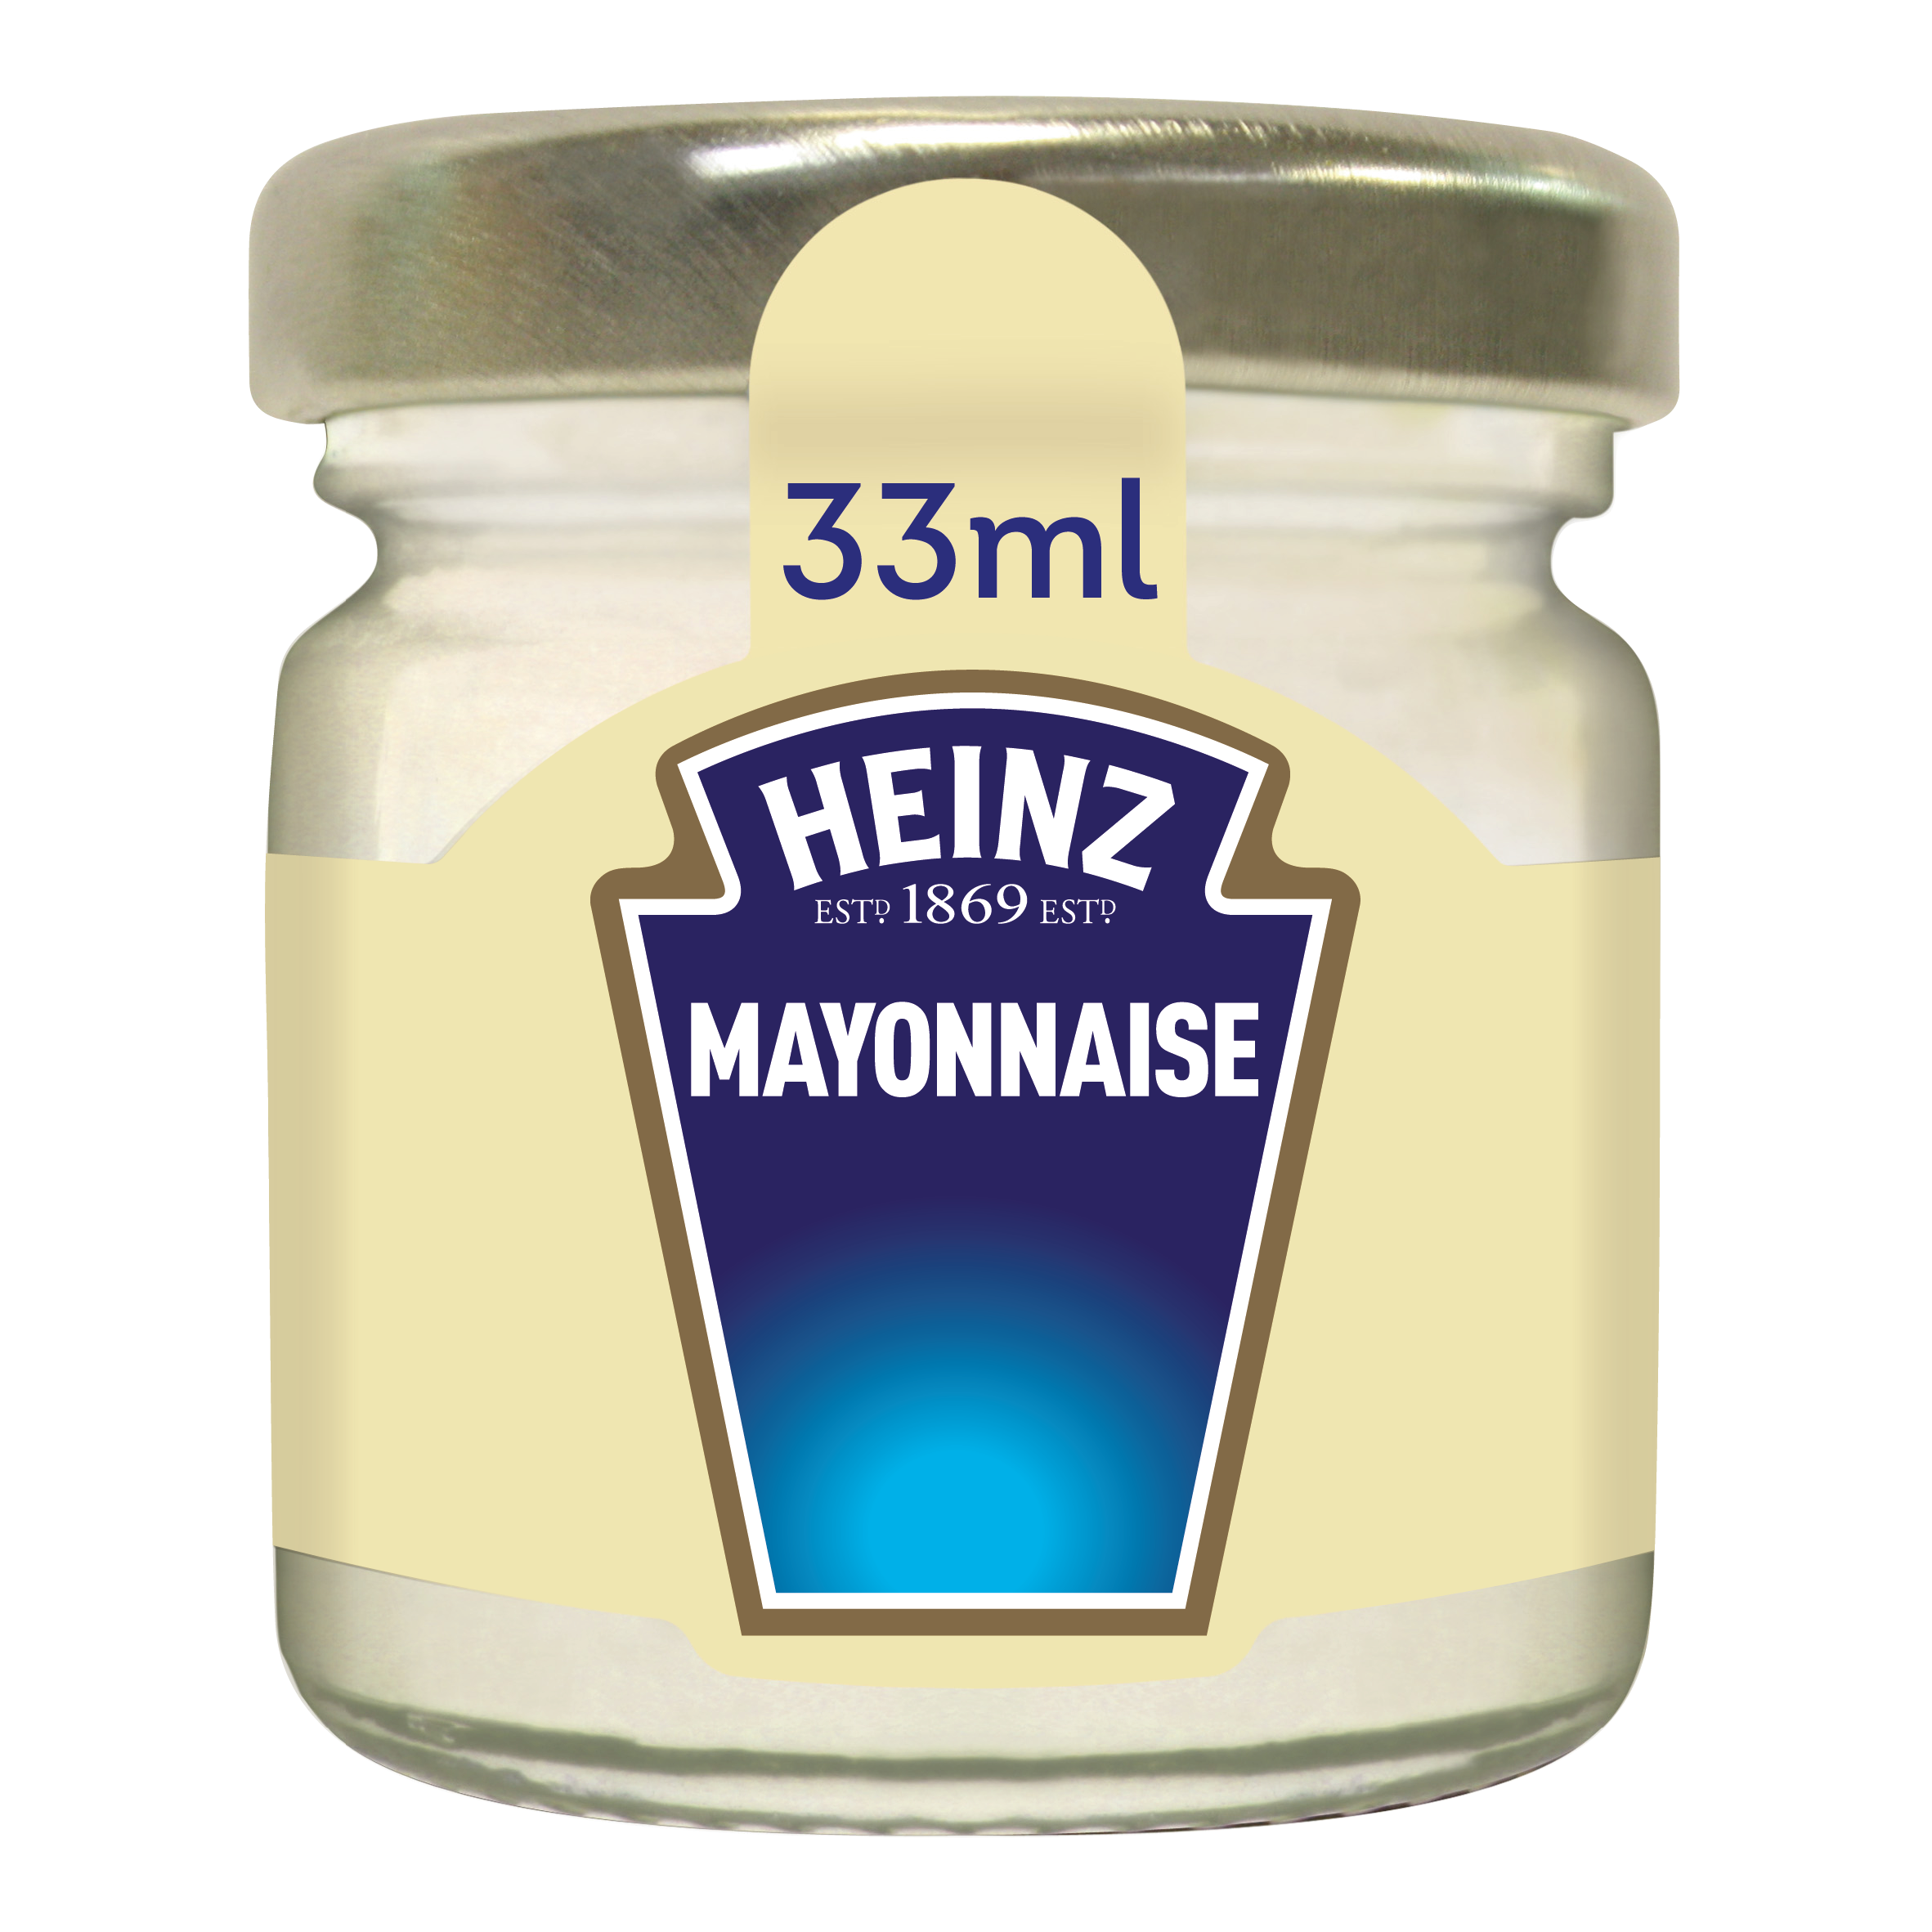 Heinz Mayonnaise Free range eggs 33ml Premium Mini Jars image